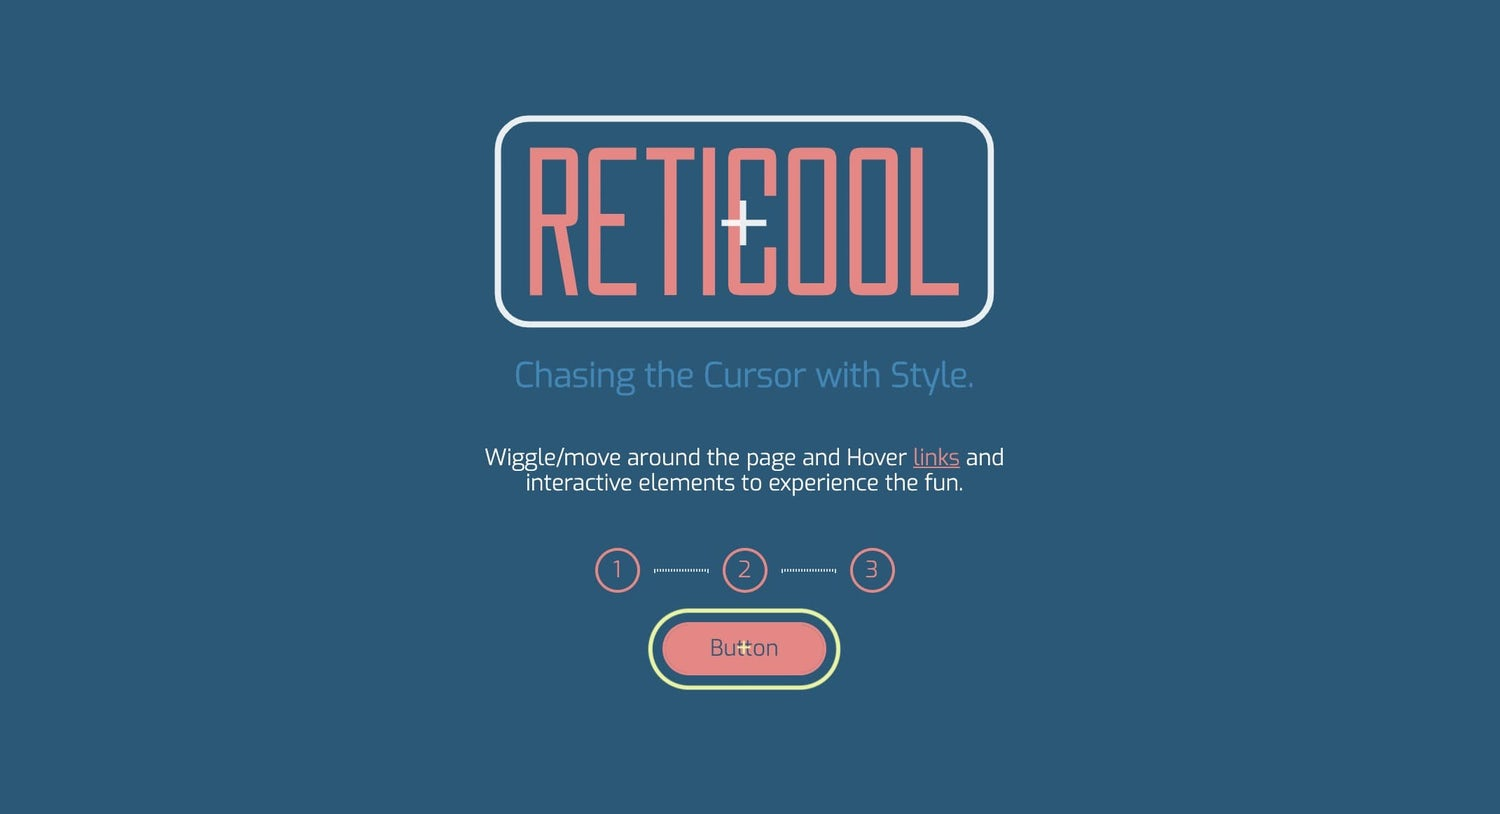 Reticool demo shows various scenarios where the cursor morphs into shape